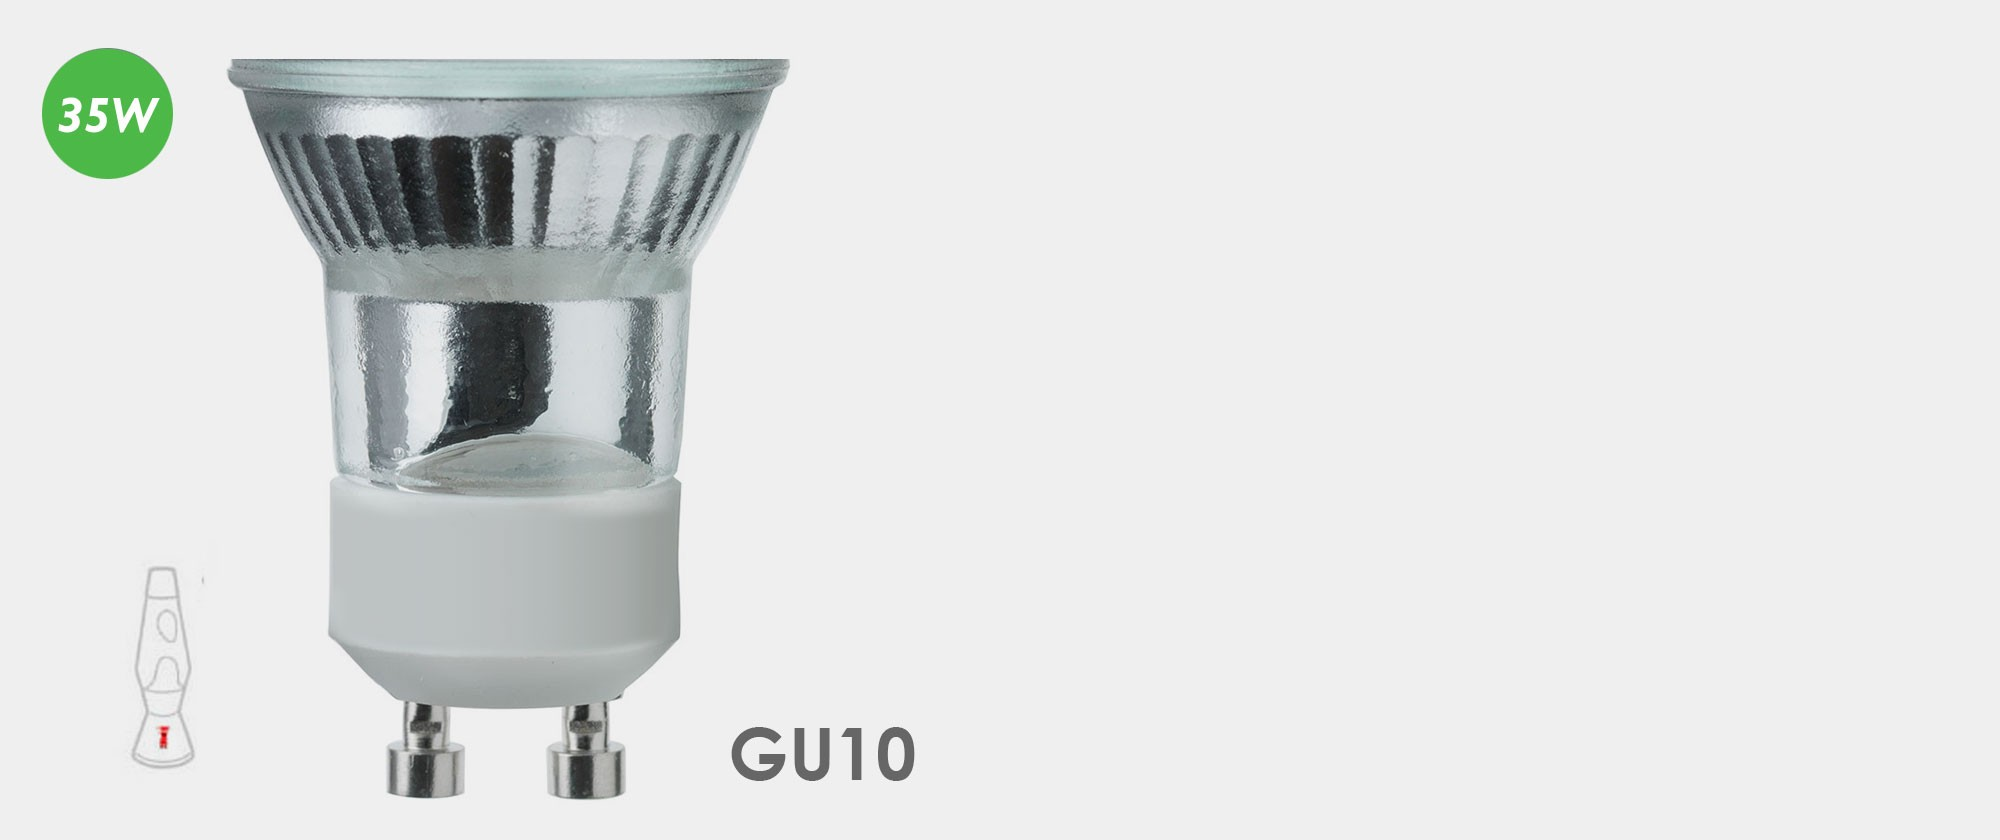 35W - Astro Lava Lamp Bulb - GU10 fitting mini halogen